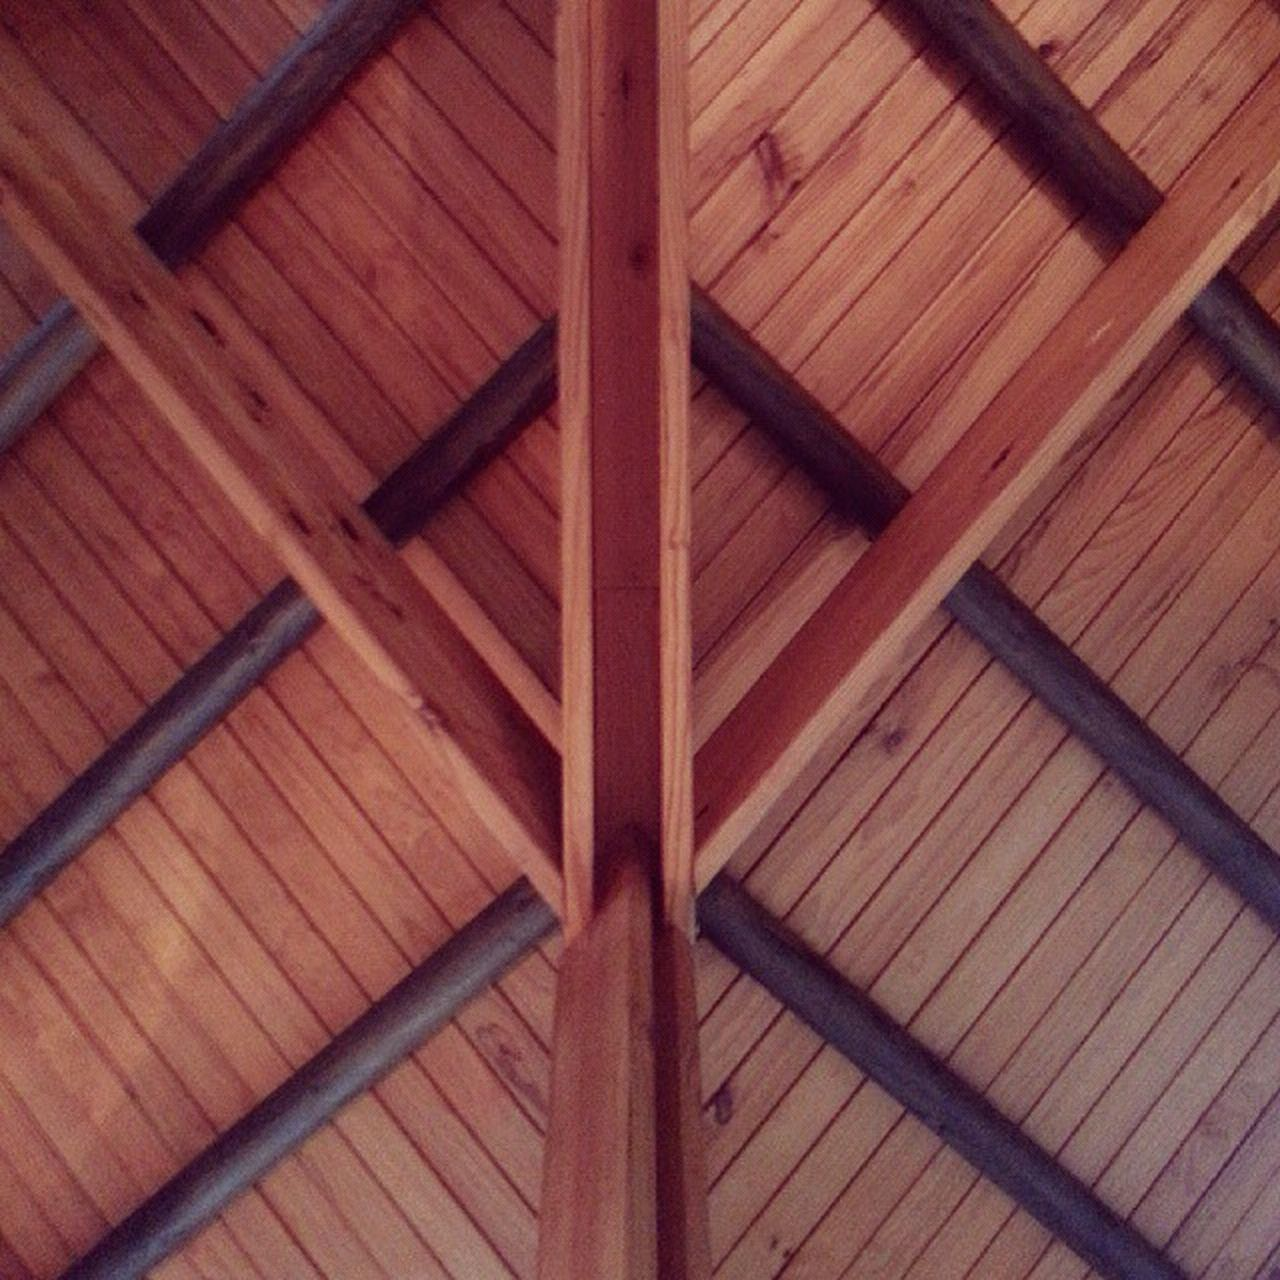 wood - material, architecture, no people, pattern, built structure, full frame, protection, day, indoors, backgrounds, low angle view, close-up